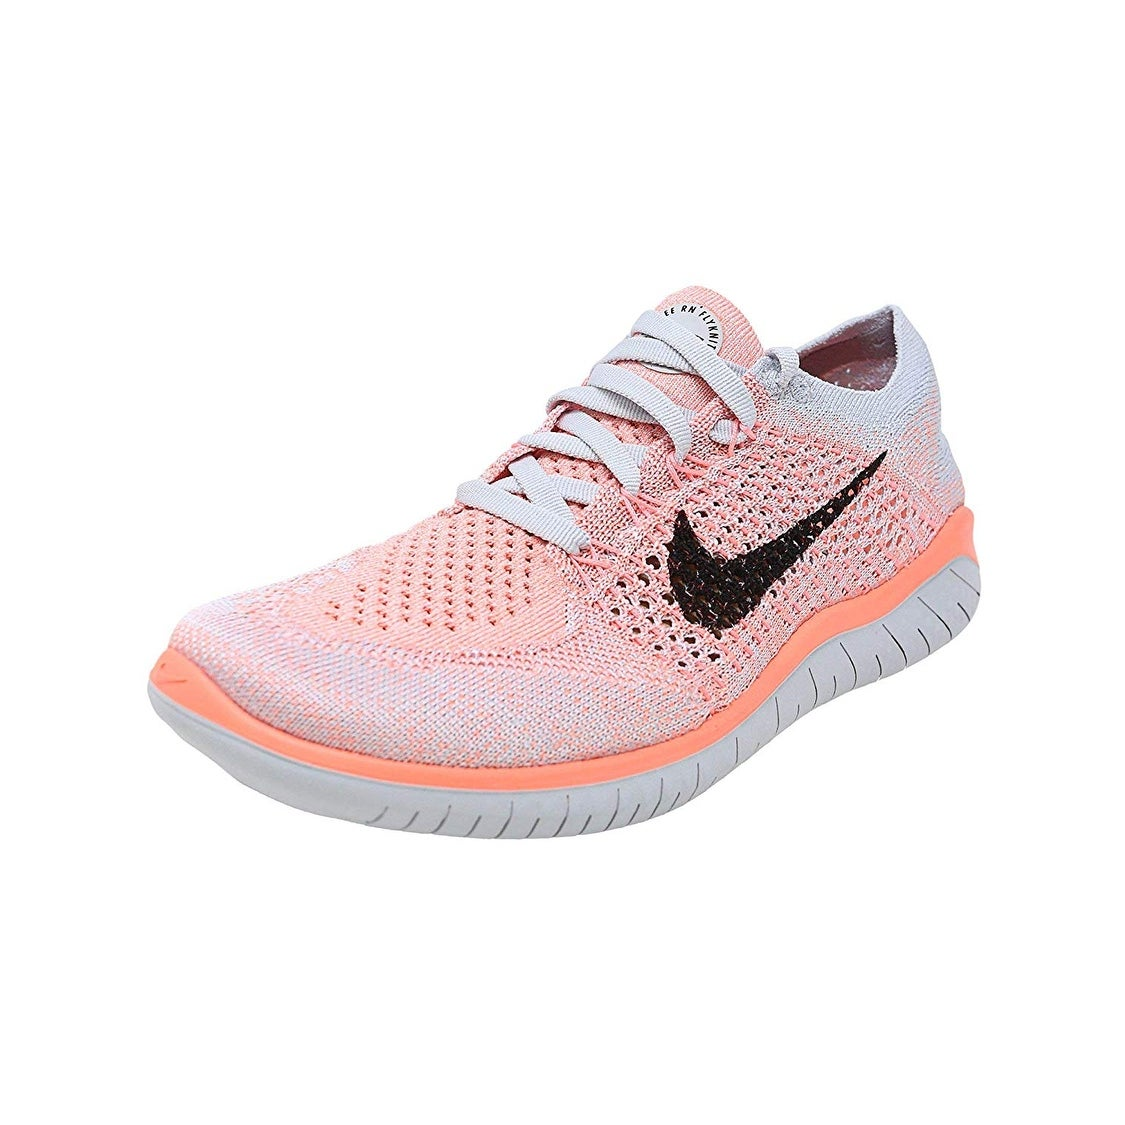 Free Rn Flyknit 2018 Low Top Lace Up